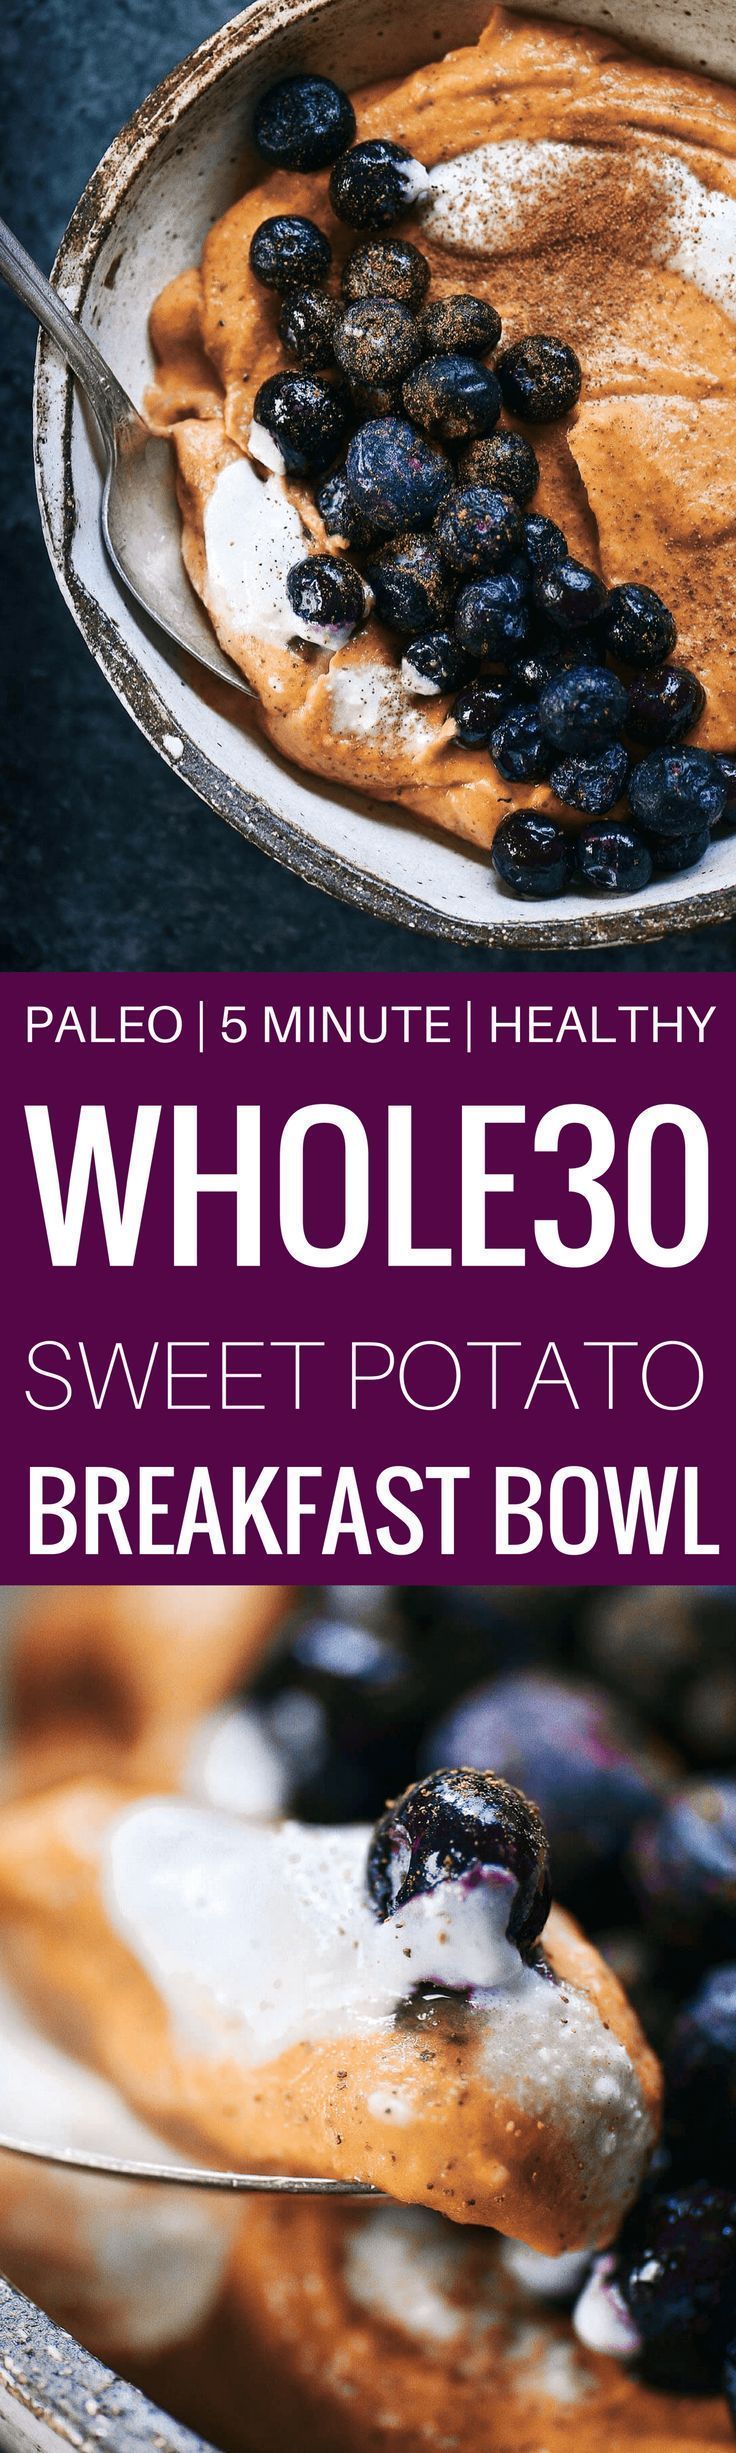 Whole30 and paleo breakfast